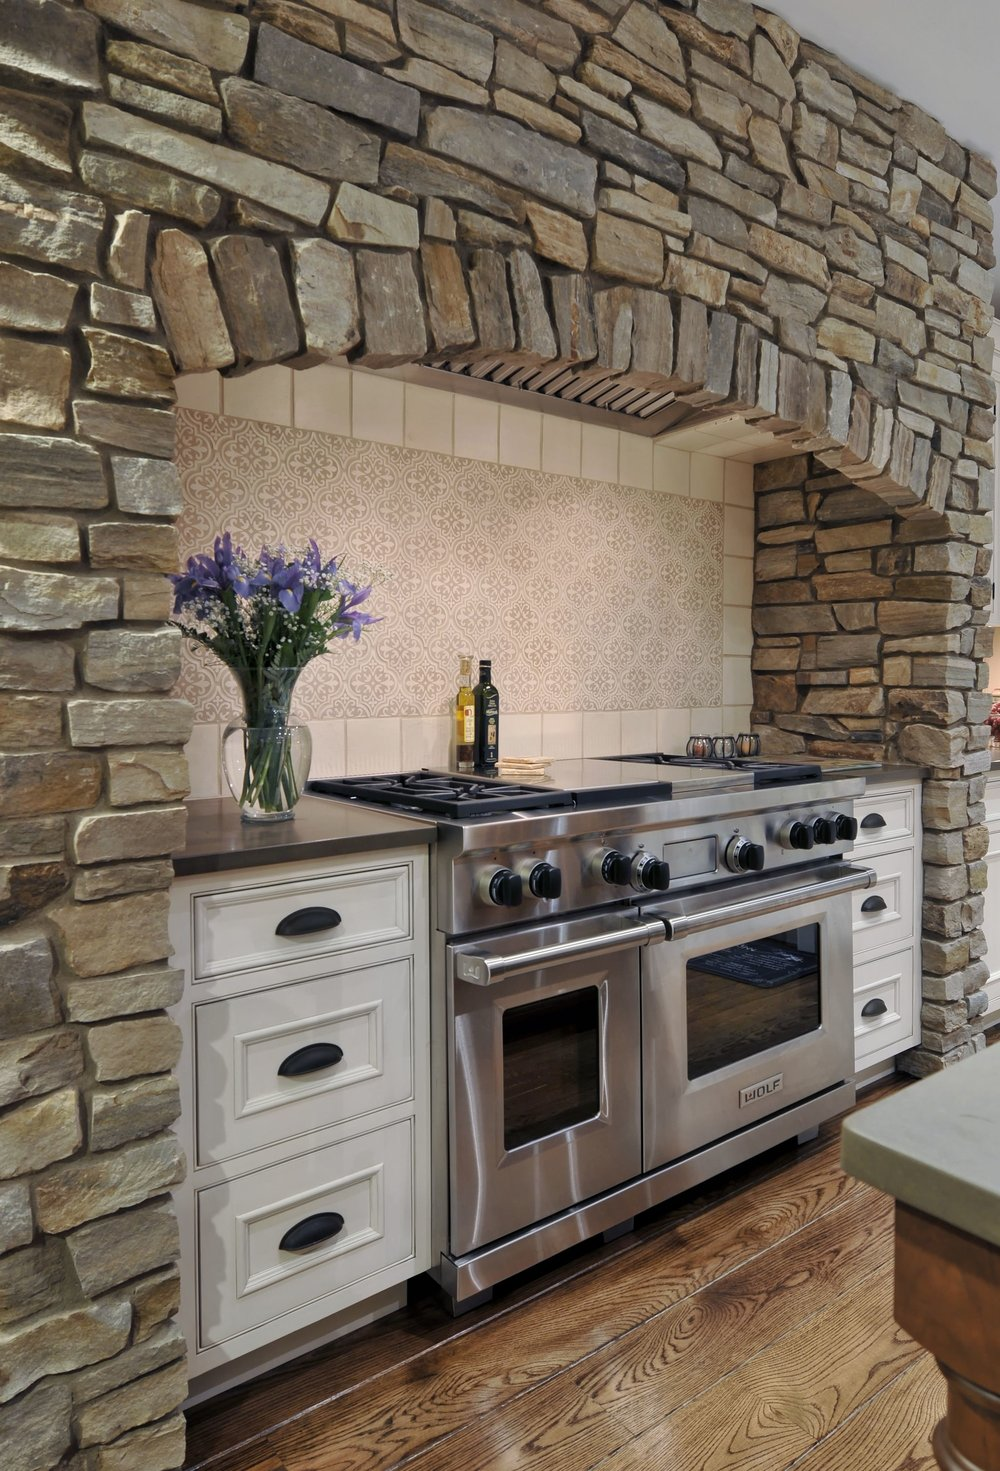 Traditional style kitchen with brick hood and stainless oven